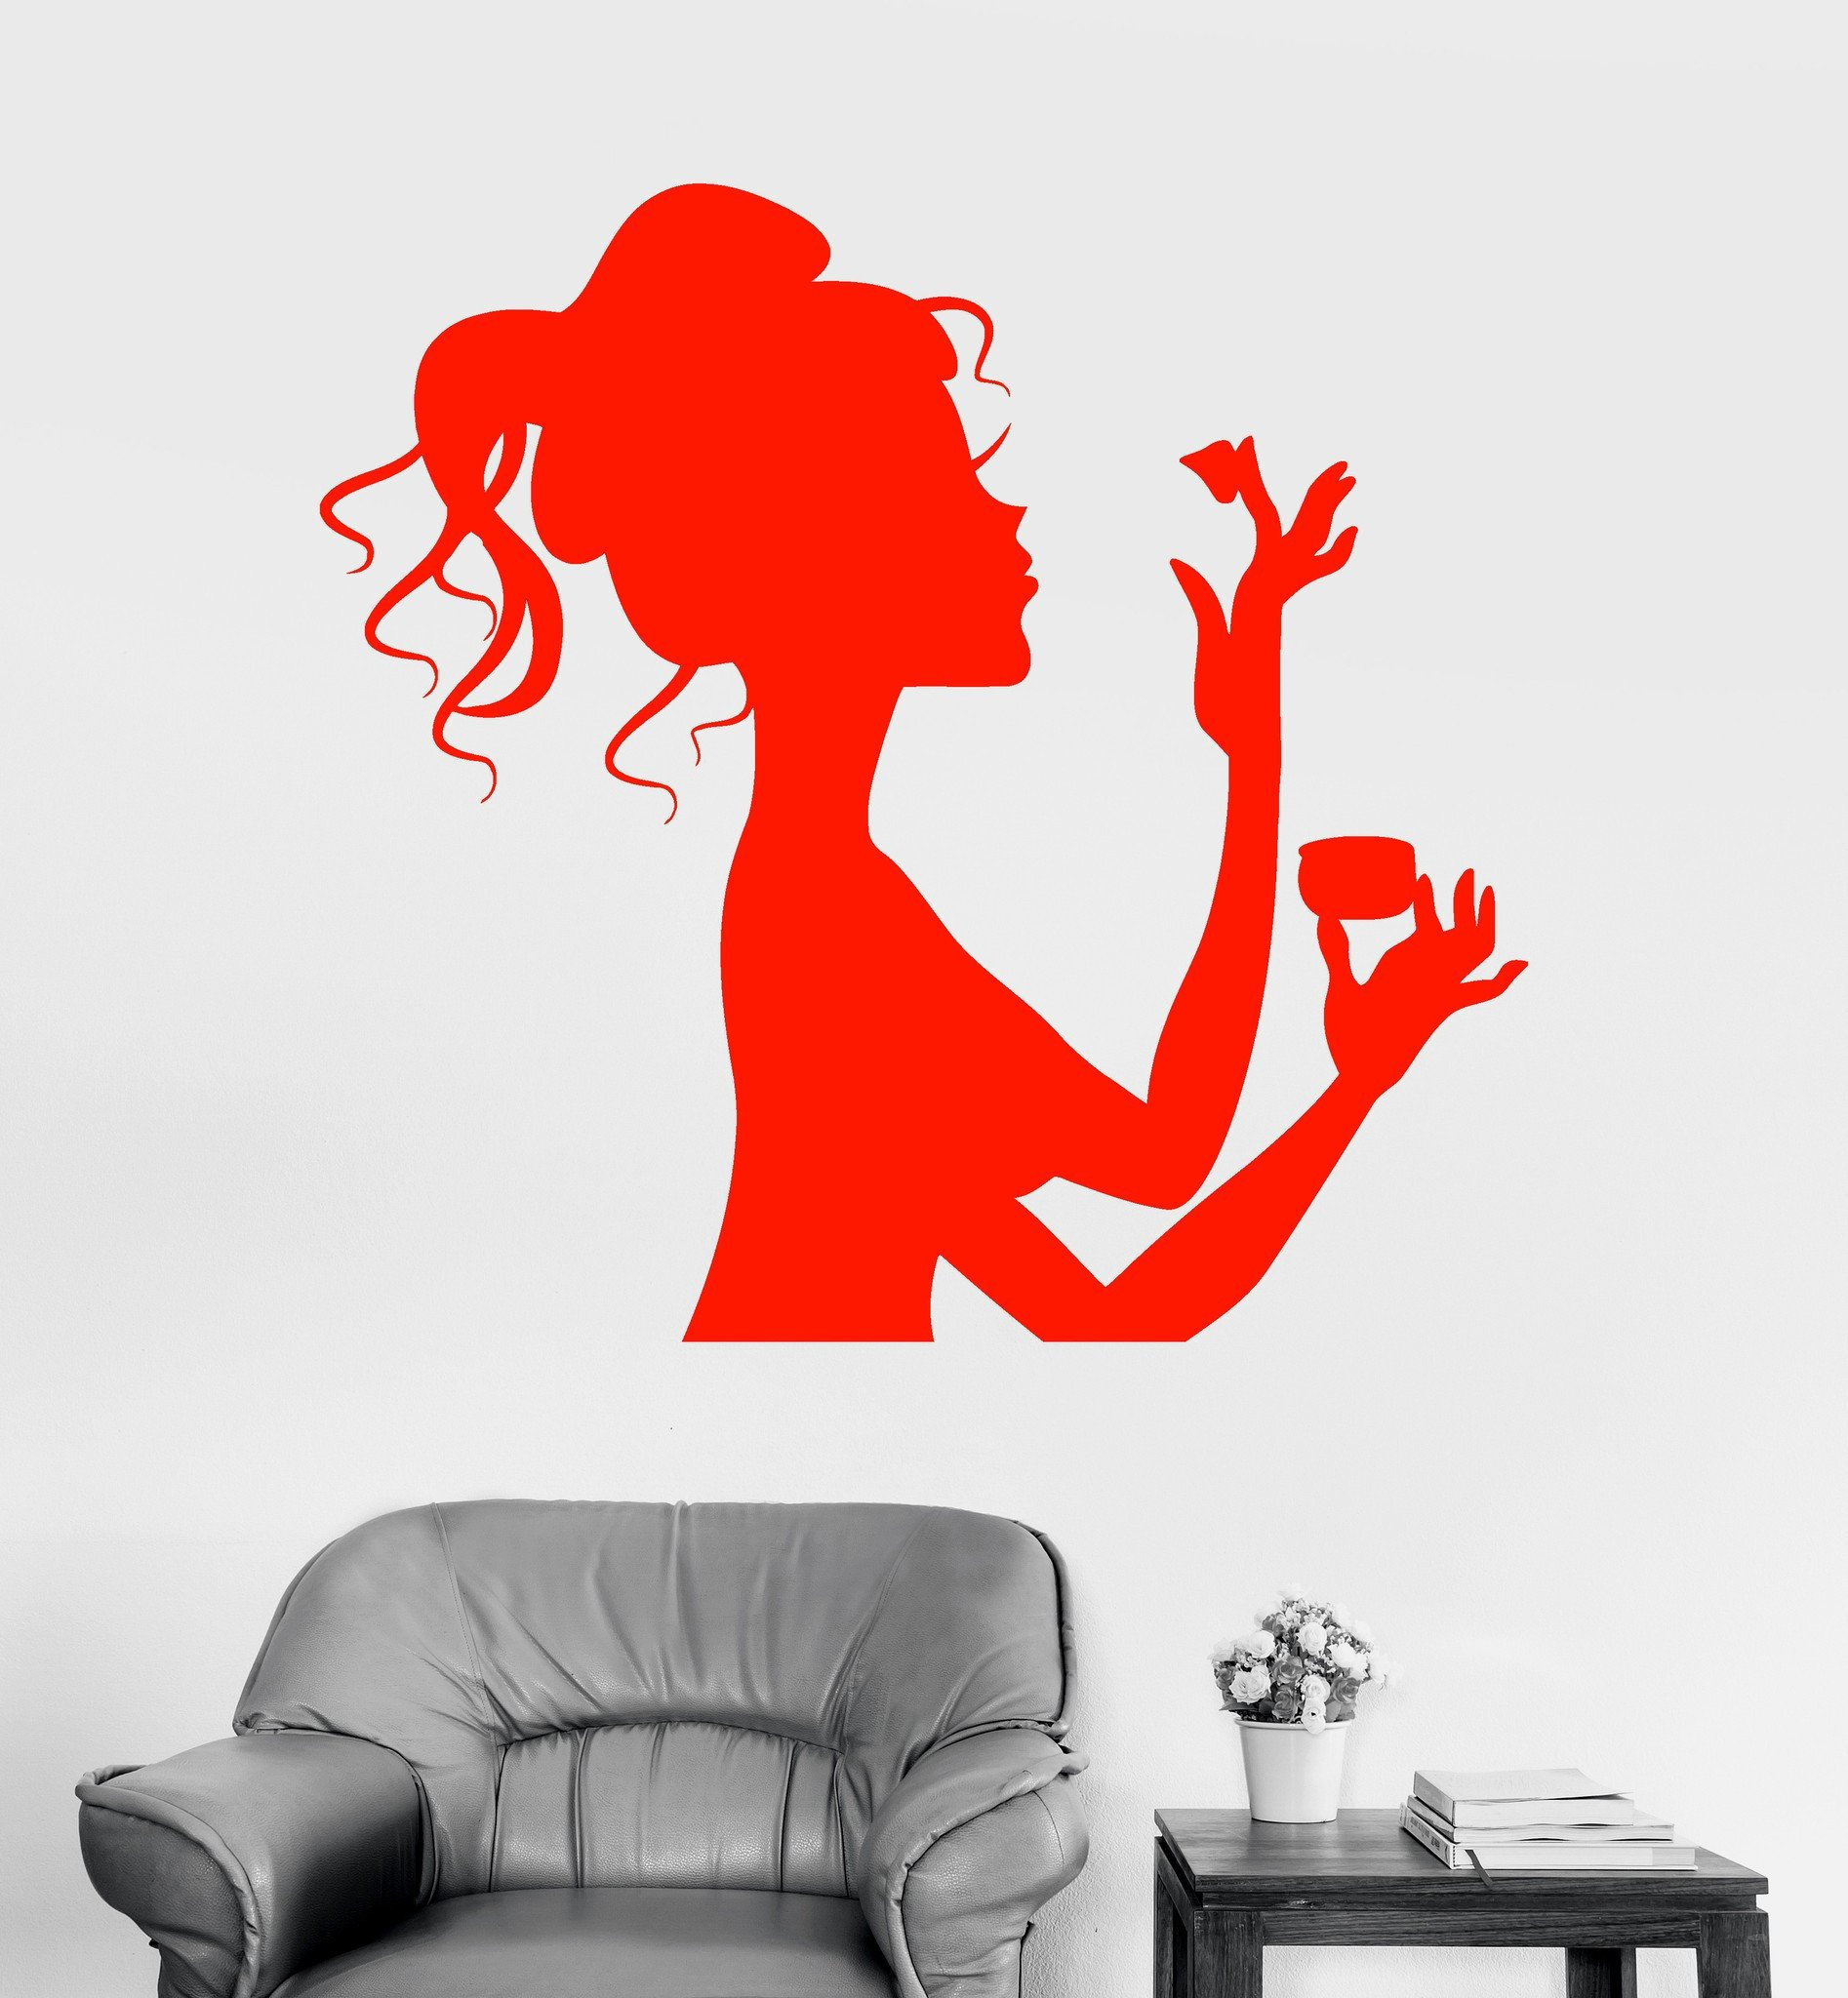 wall decals for bedroom unique 1 kirkland wall decor home design 0d throughout red black white wall art of red black white wall art